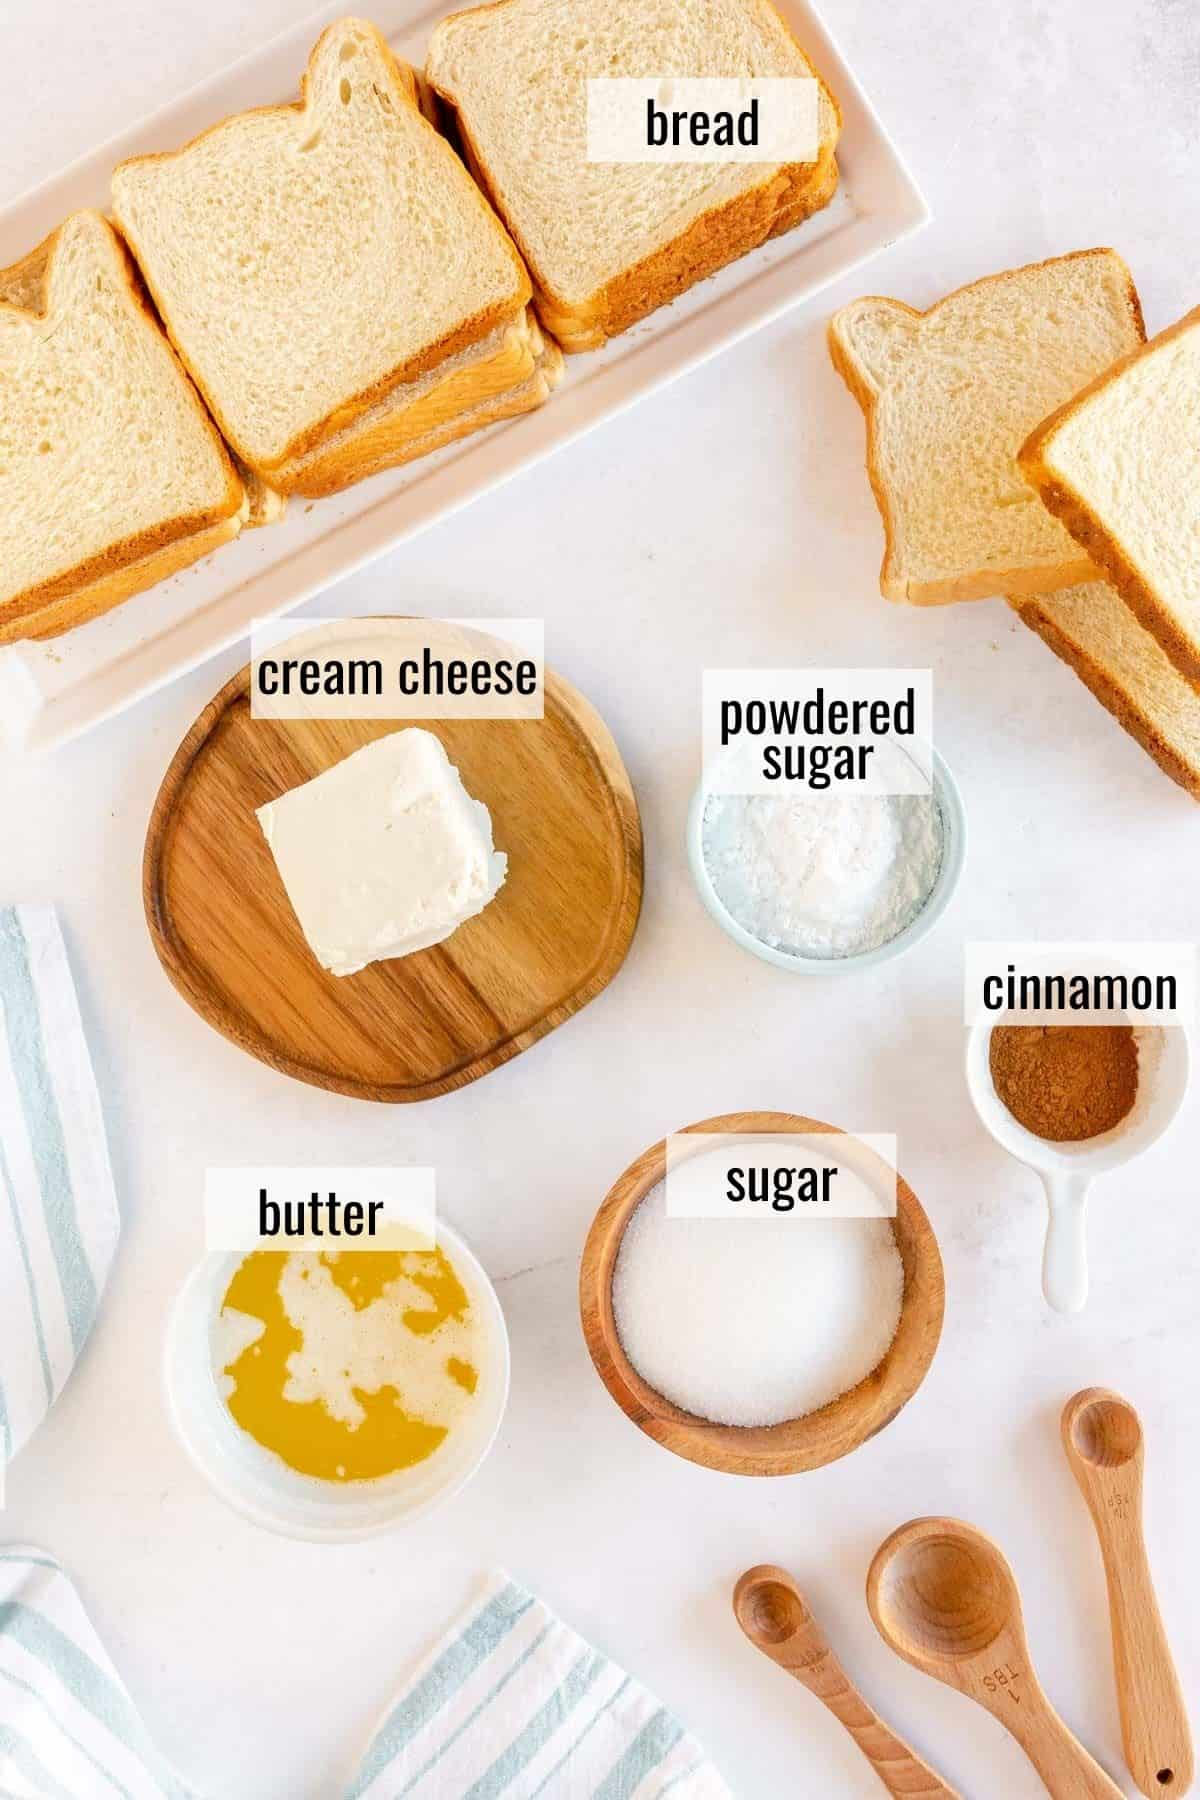 ingredients for cinnamon cream cheese roll ups laid out and labeled